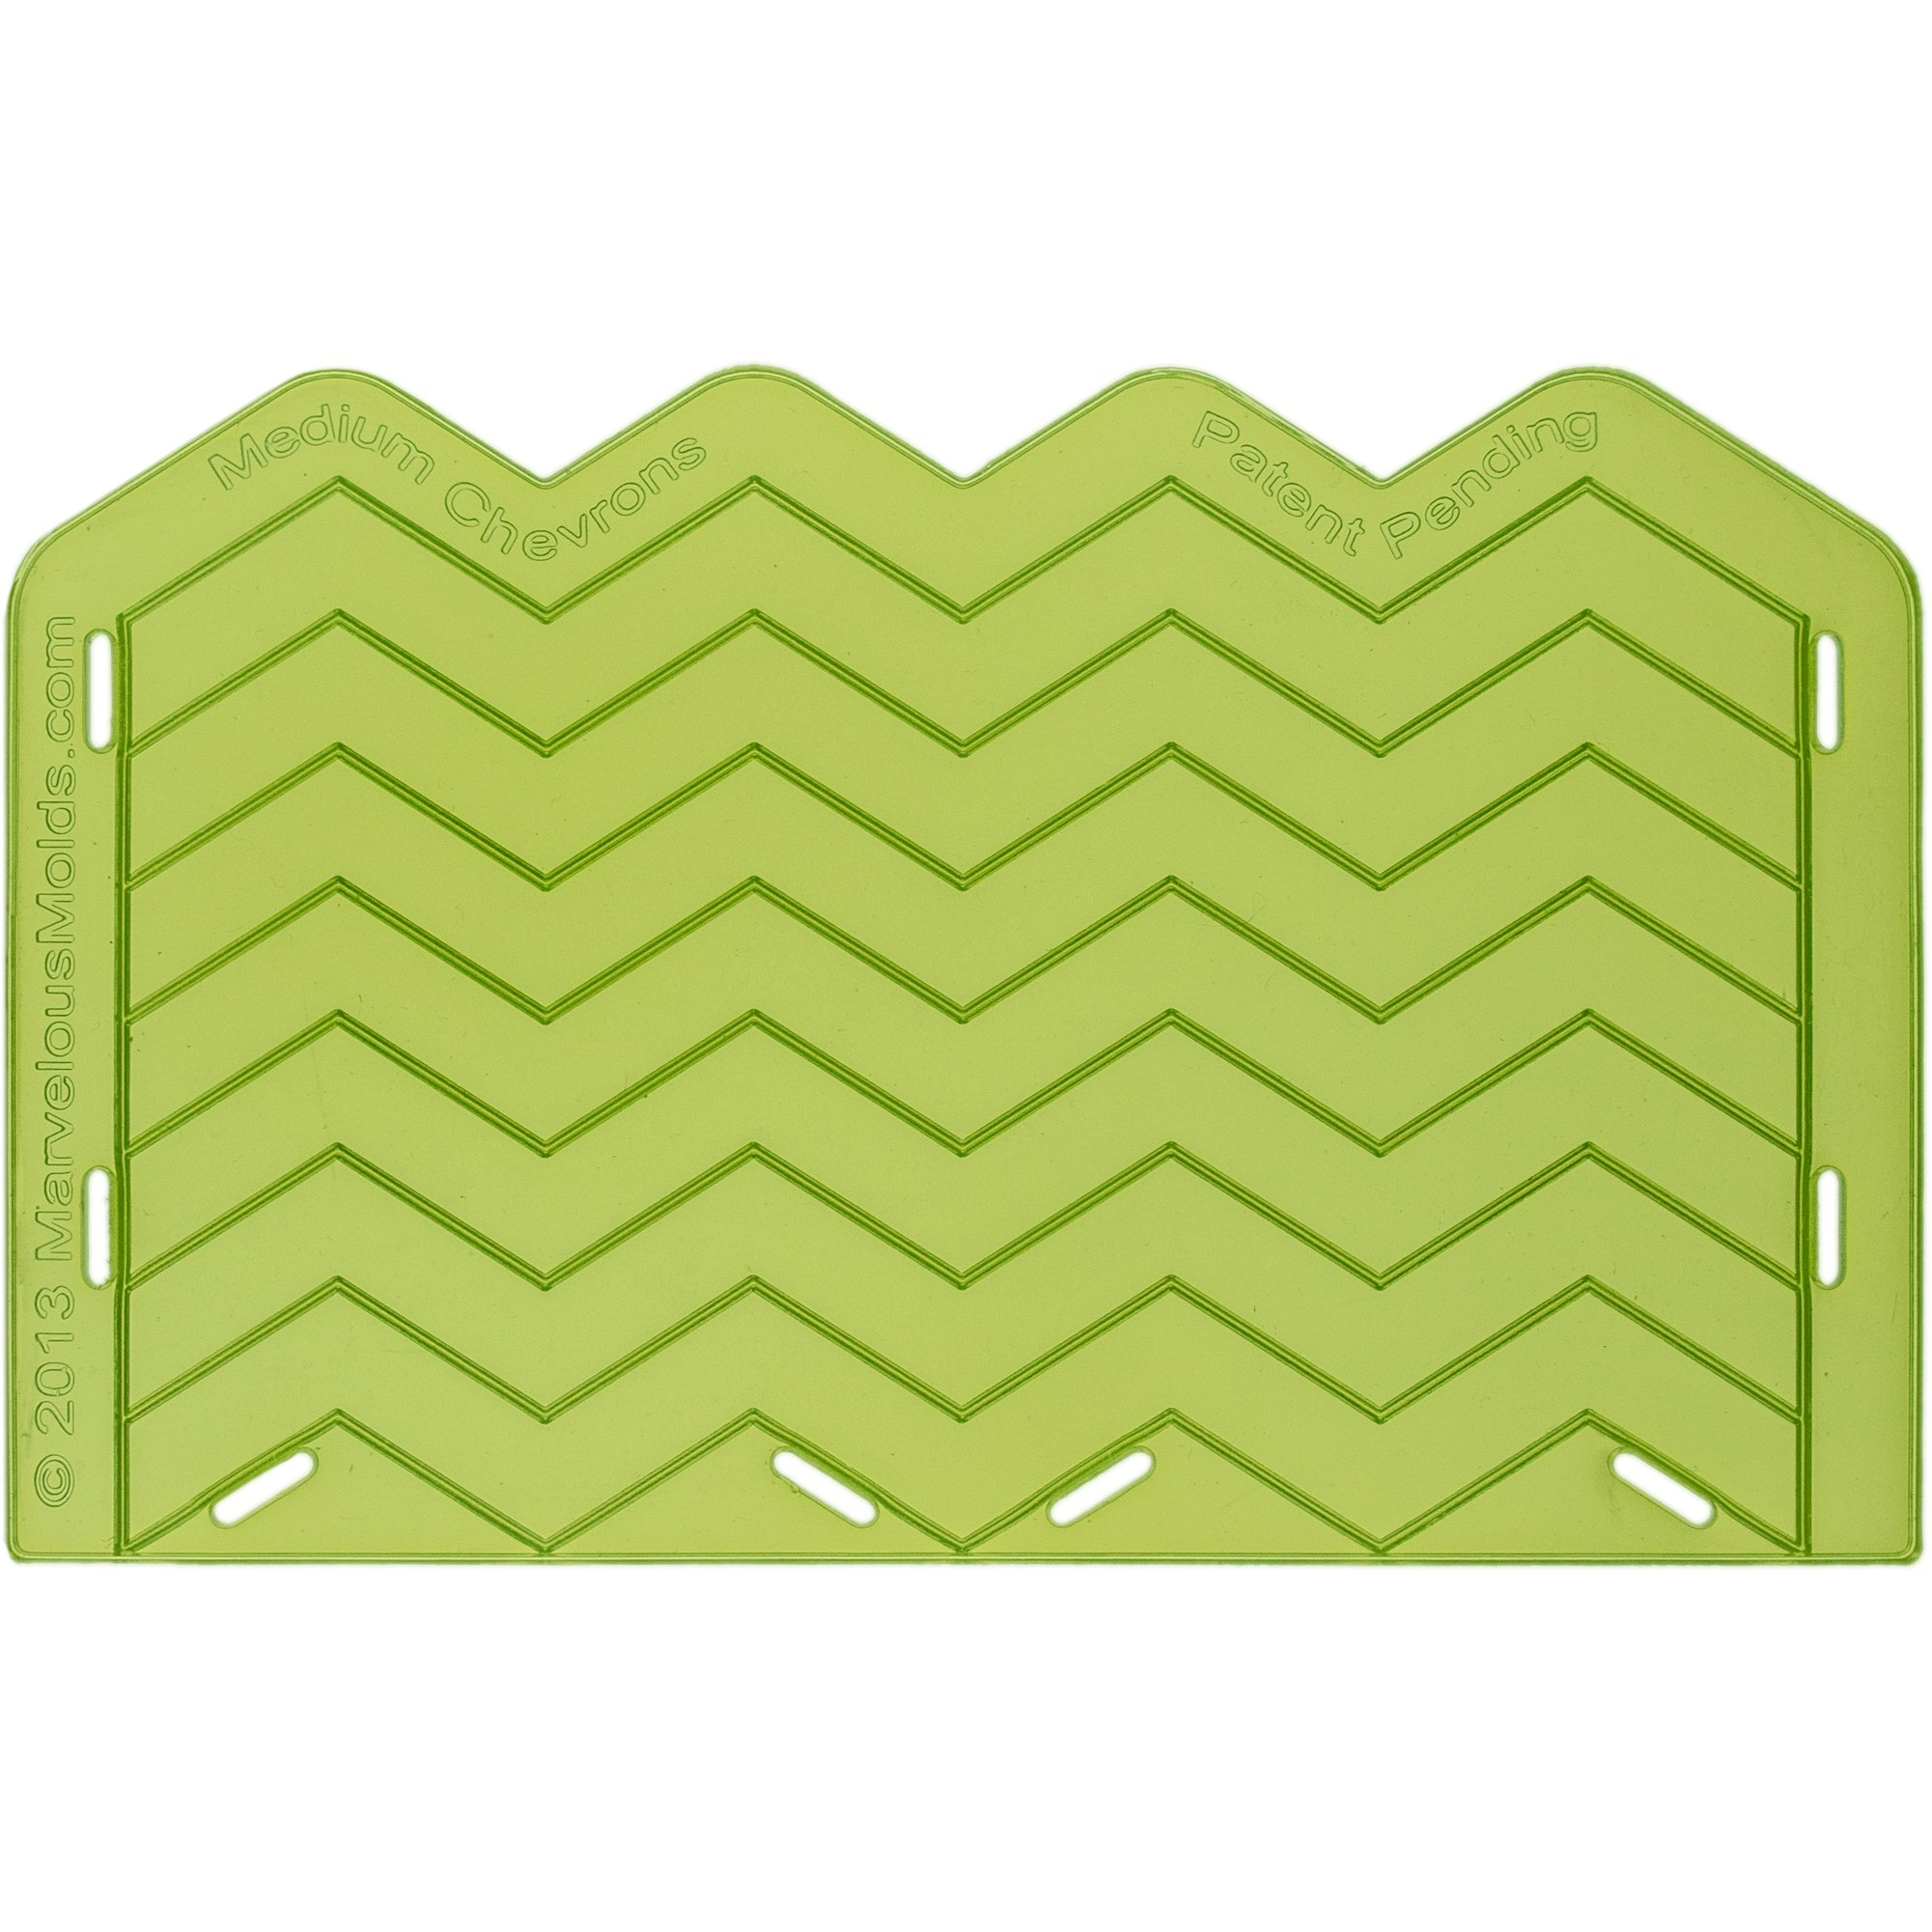 Marvelous Molds Medium Chevron Silicone Onlay for Cake Decorating with Fondant and Gumpaste Icing by Marvelous Molds (Image #1)